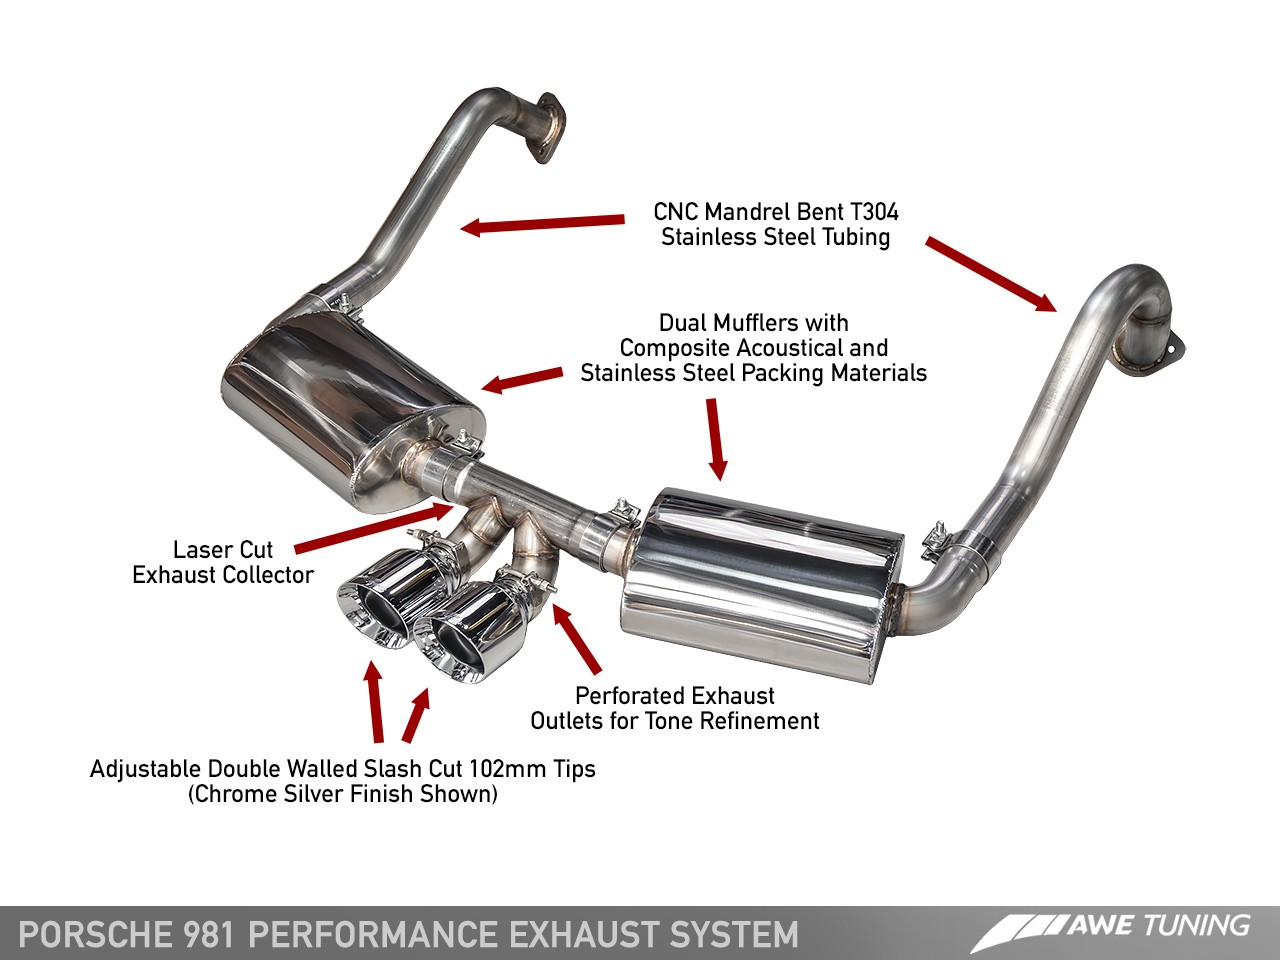 Porsche 981 Exhaust Assembled Diagram